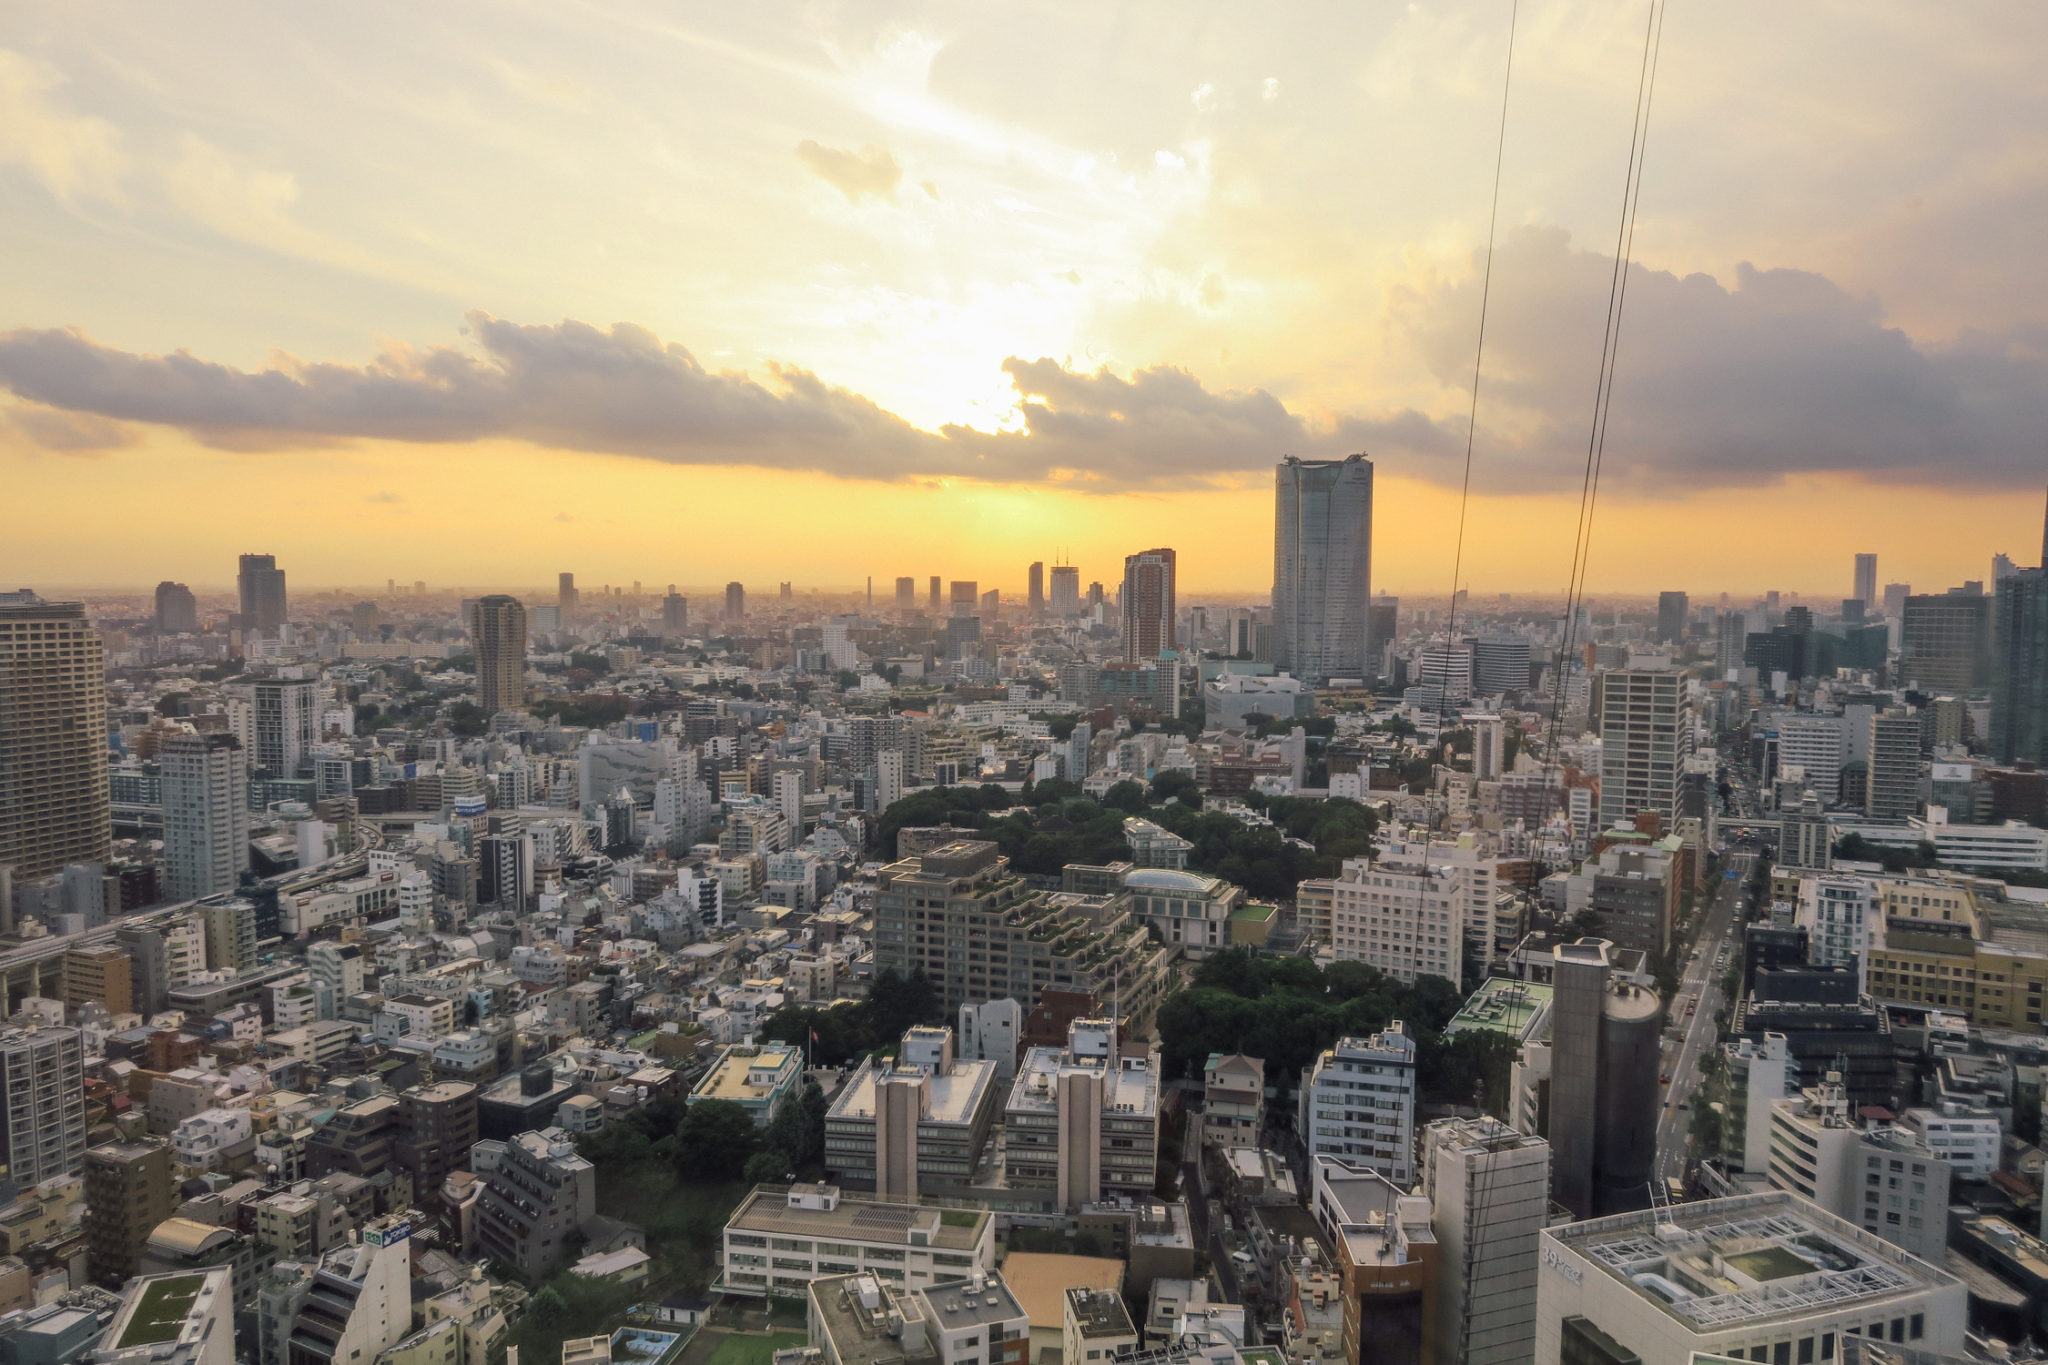 Tokyo Tower Japan 2017 View